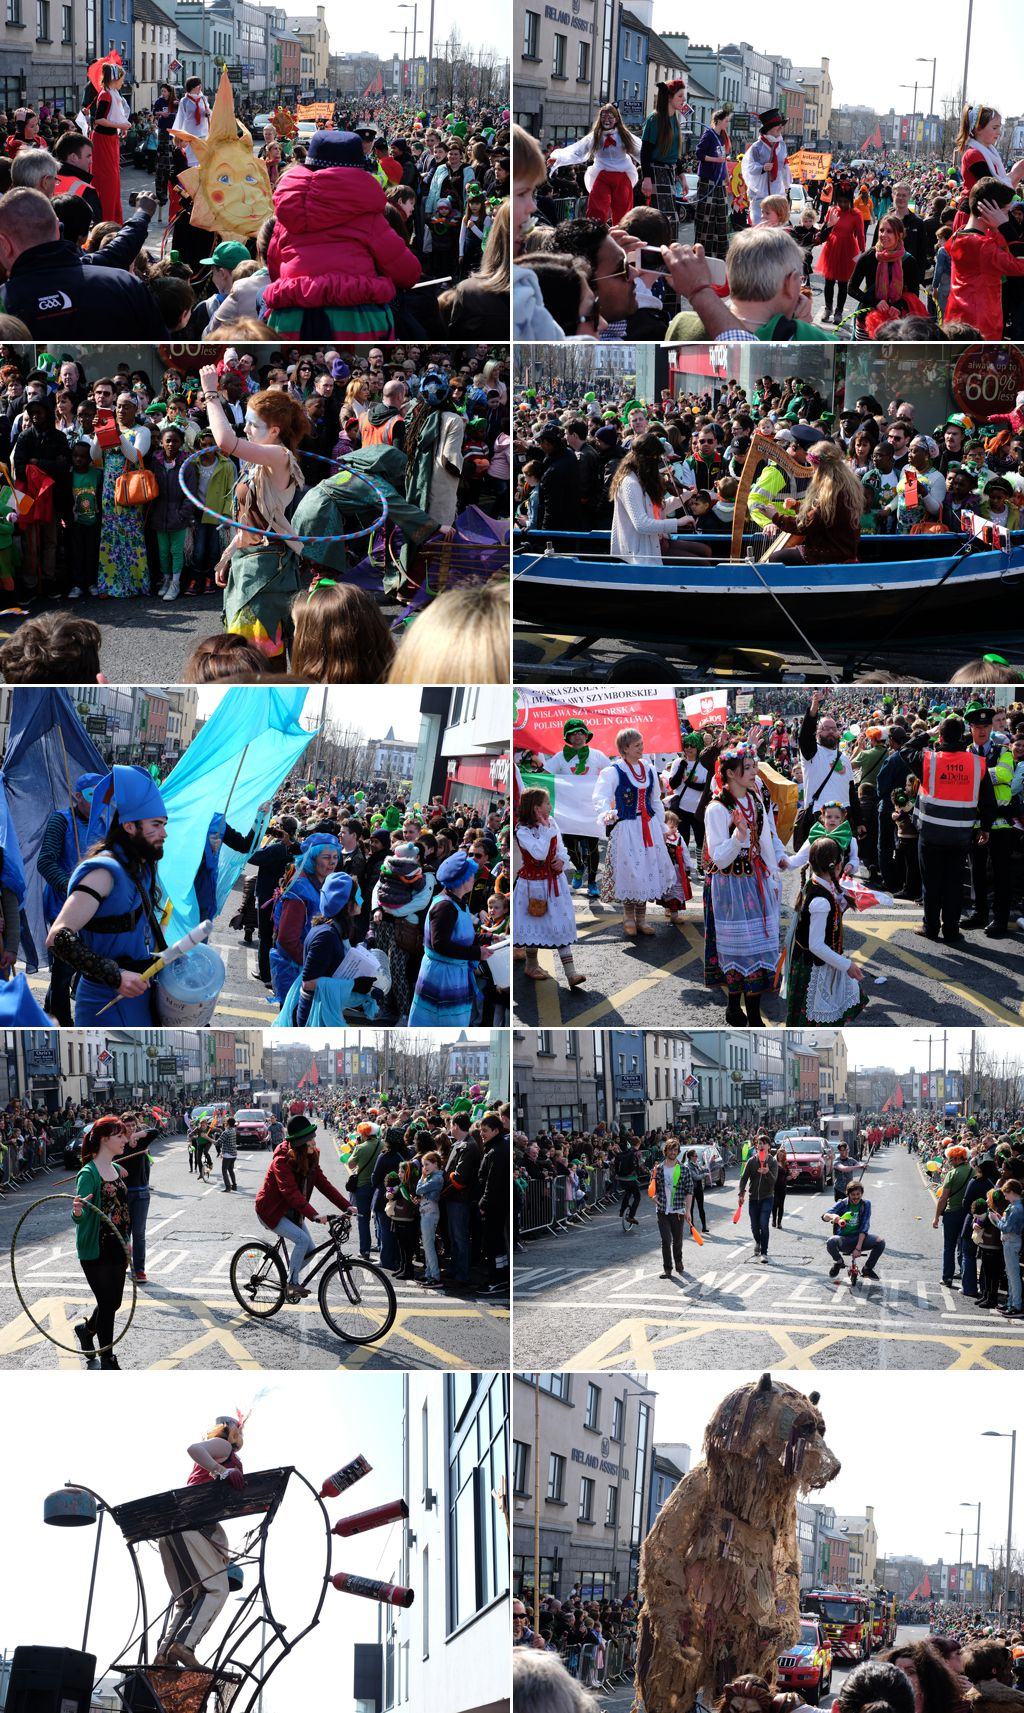 St. Patrick's Day Parade in Galway, Ireland